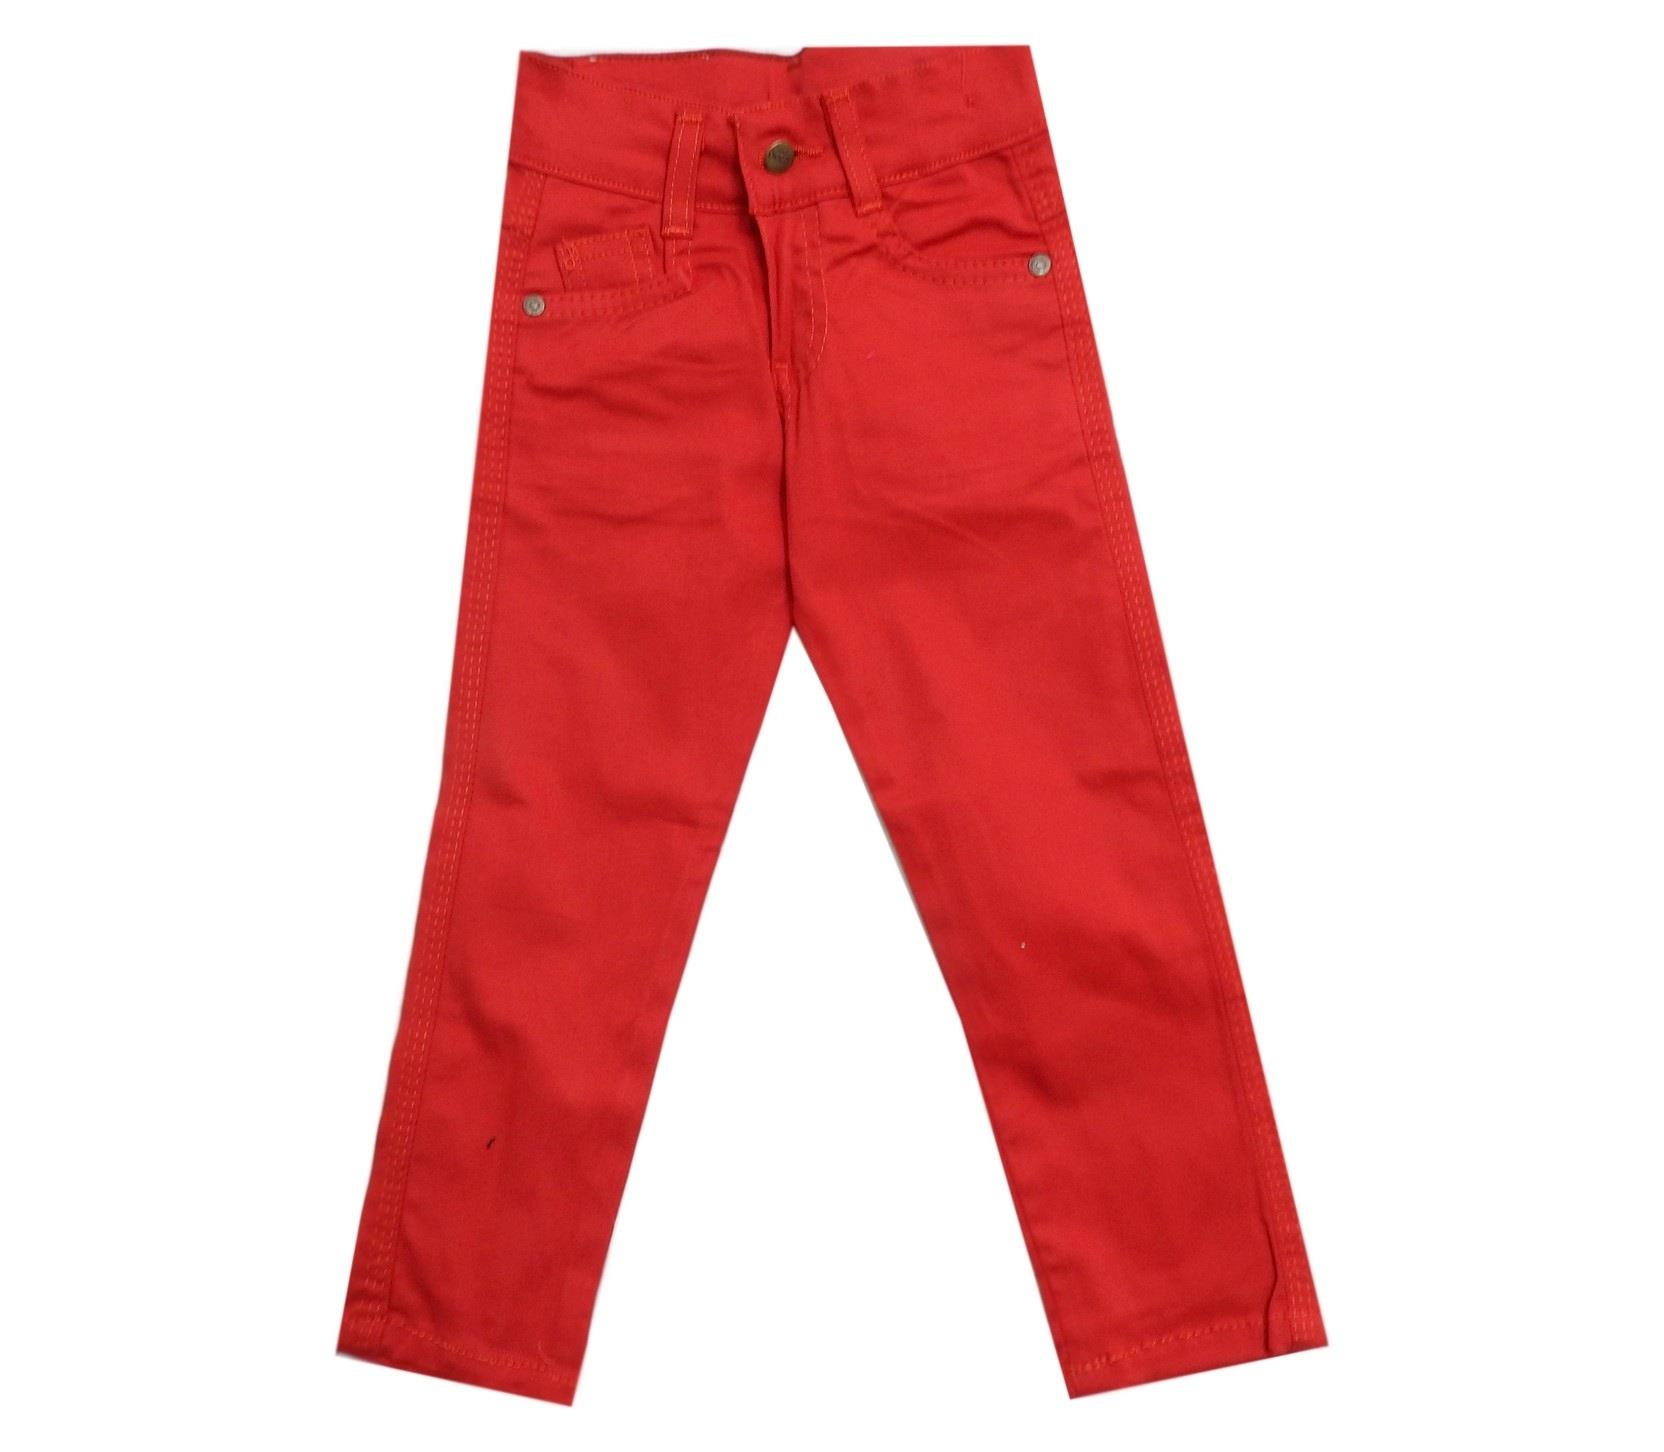 LINEN PANTS FOR GIRL (1-2-3-4 AGE)